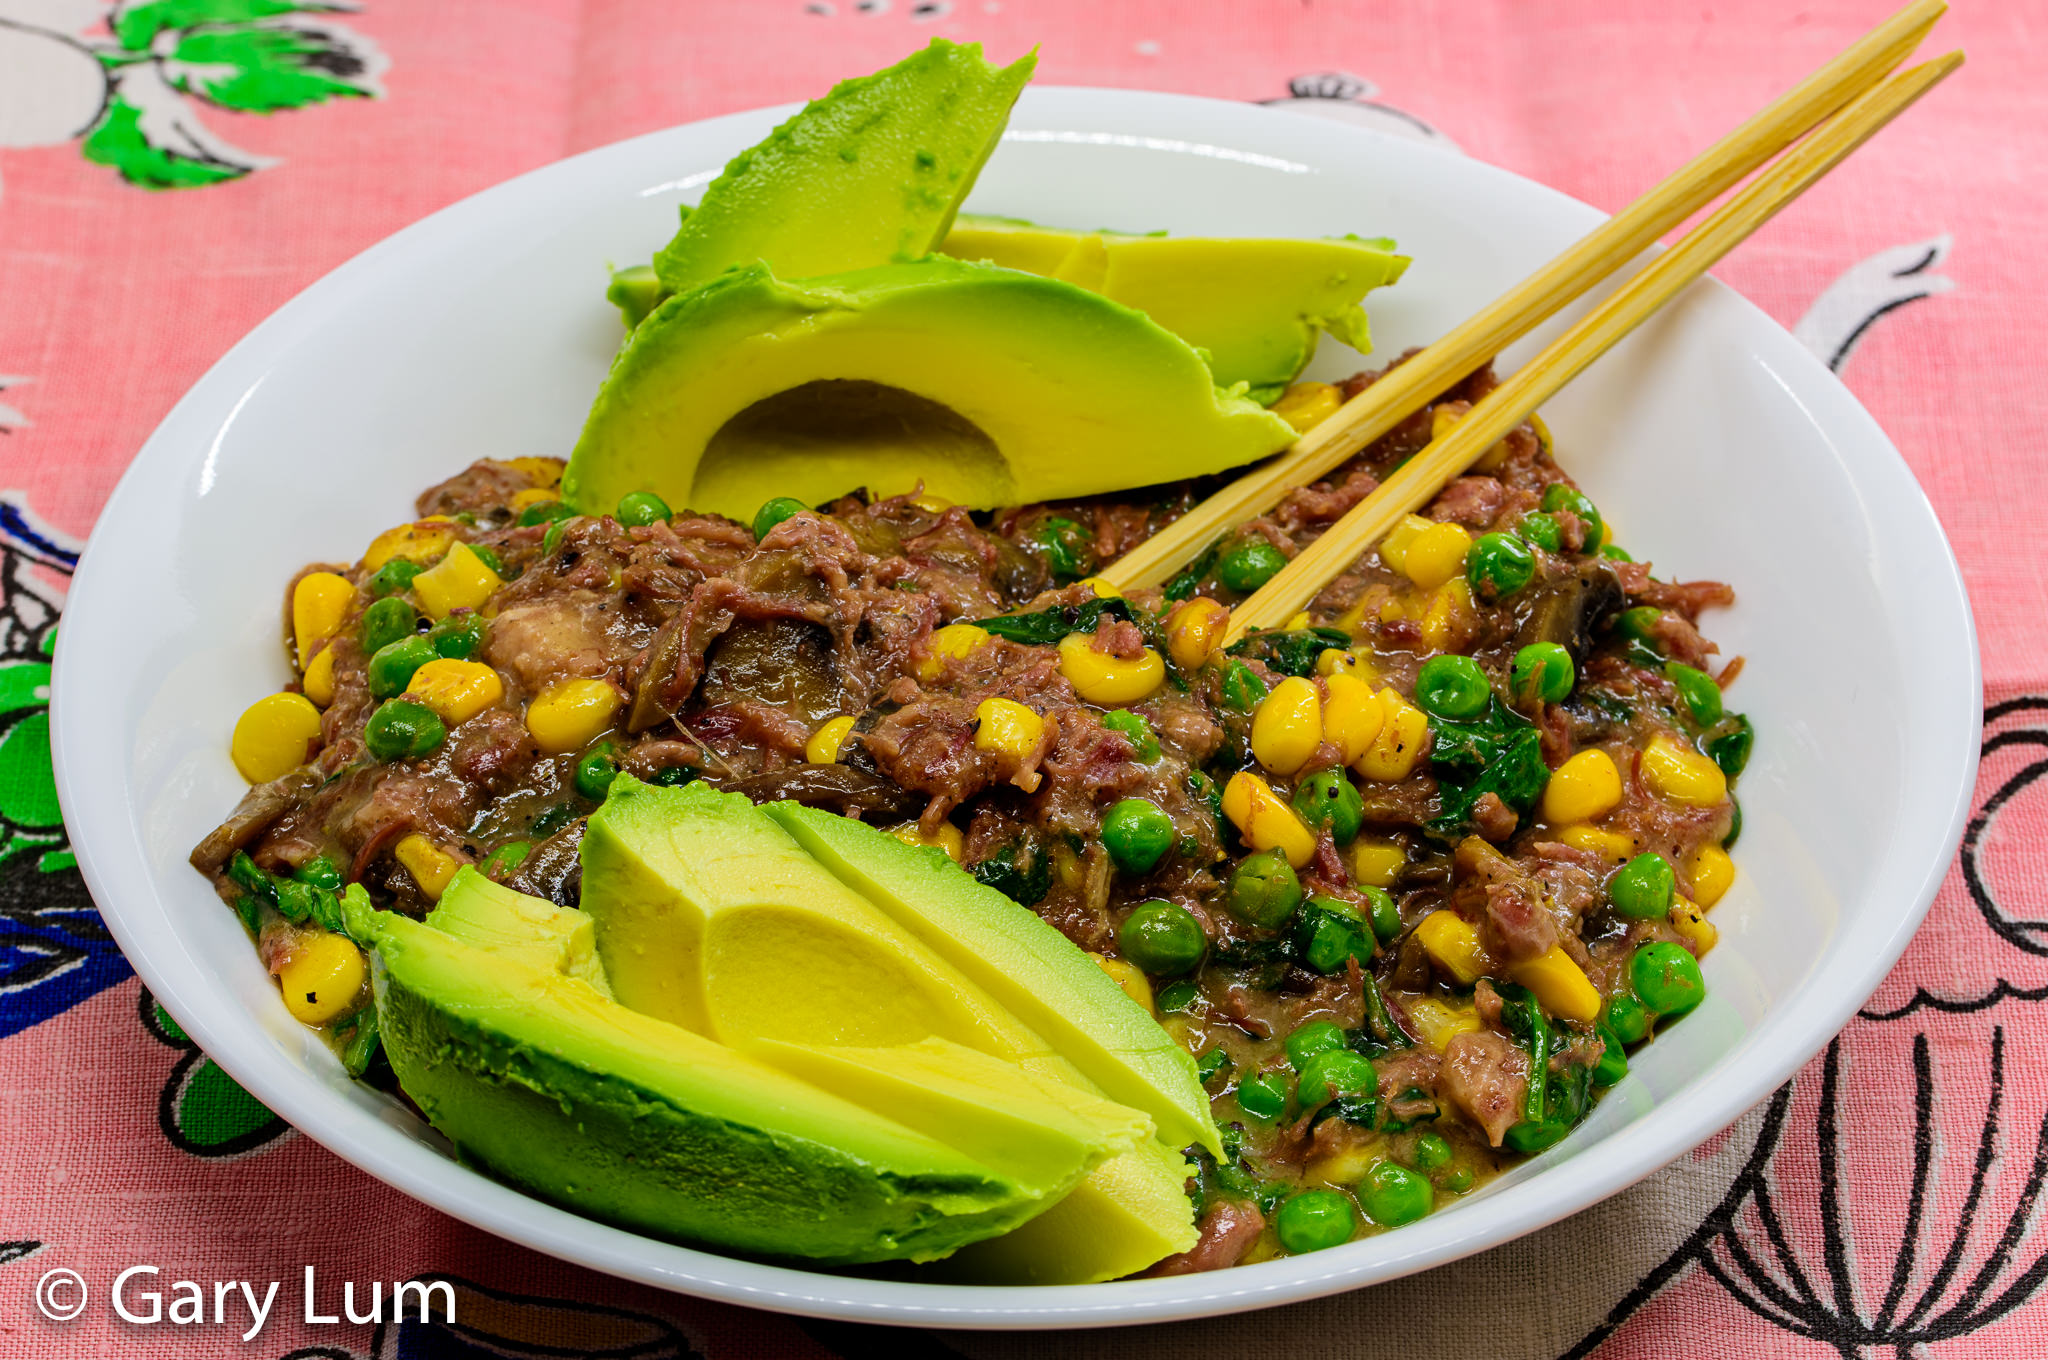 Corned beef with mushrooms, corn, peas, and avocado. Gary Lum.